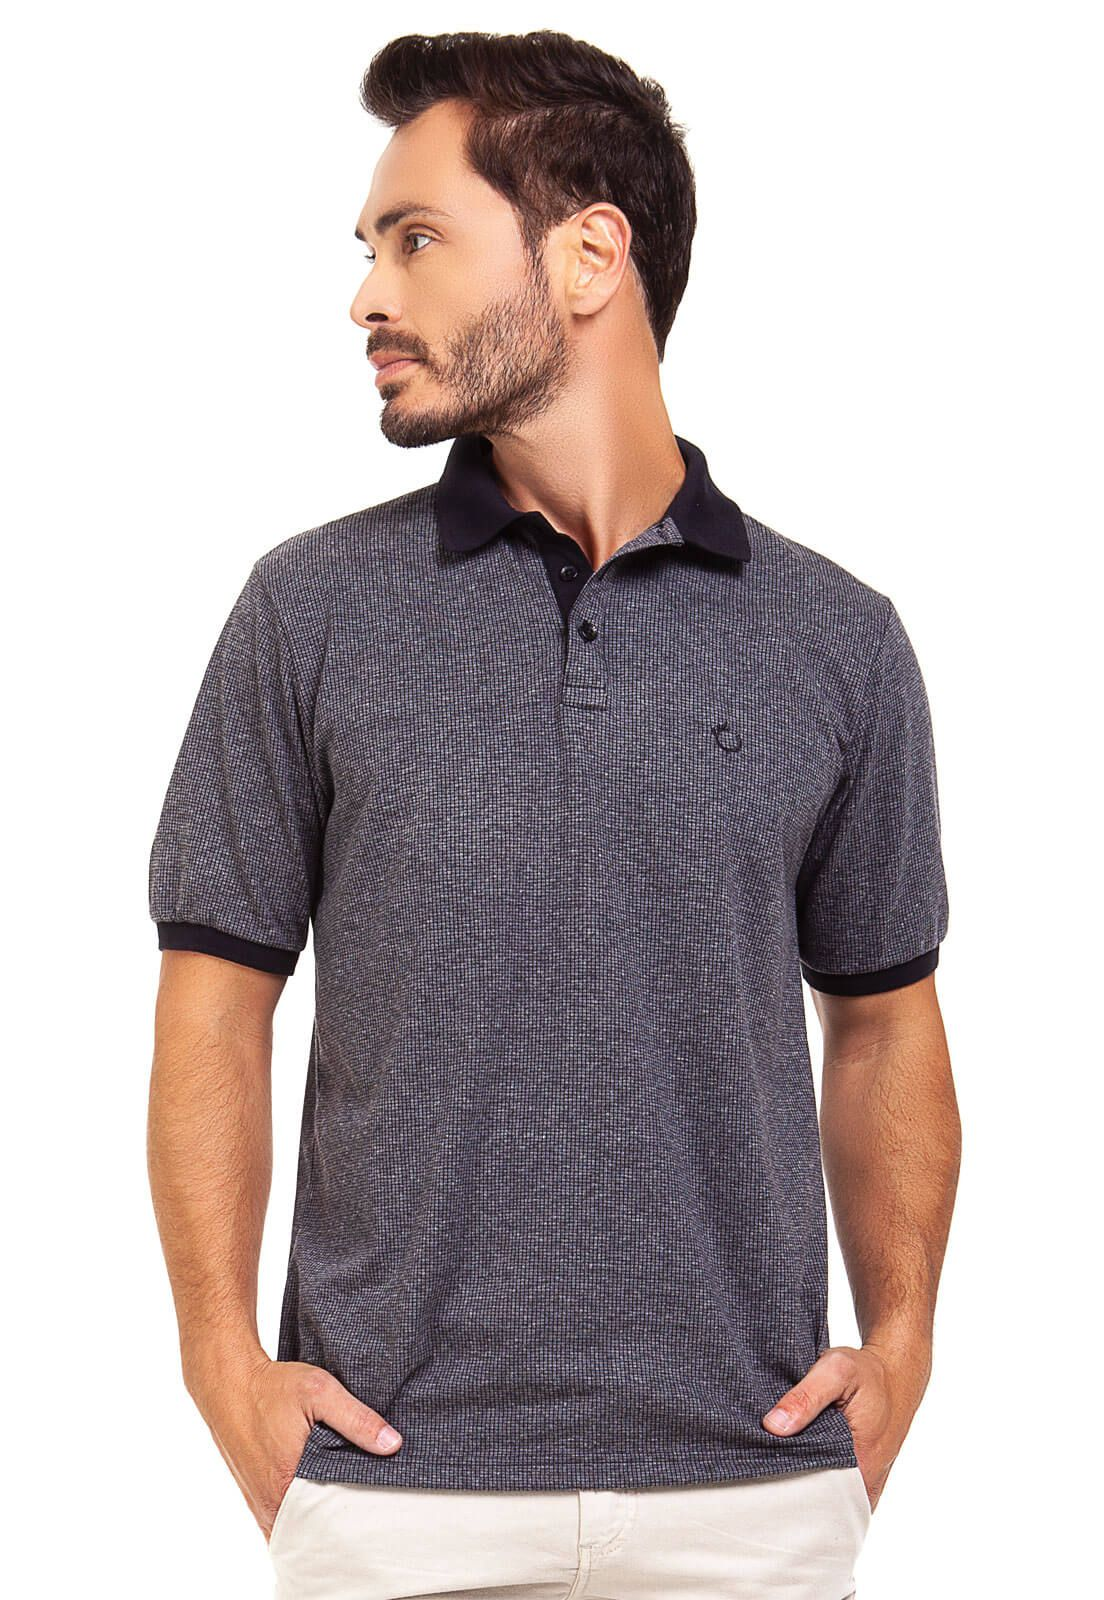 KIT Polo Olimpo Comfort Casual